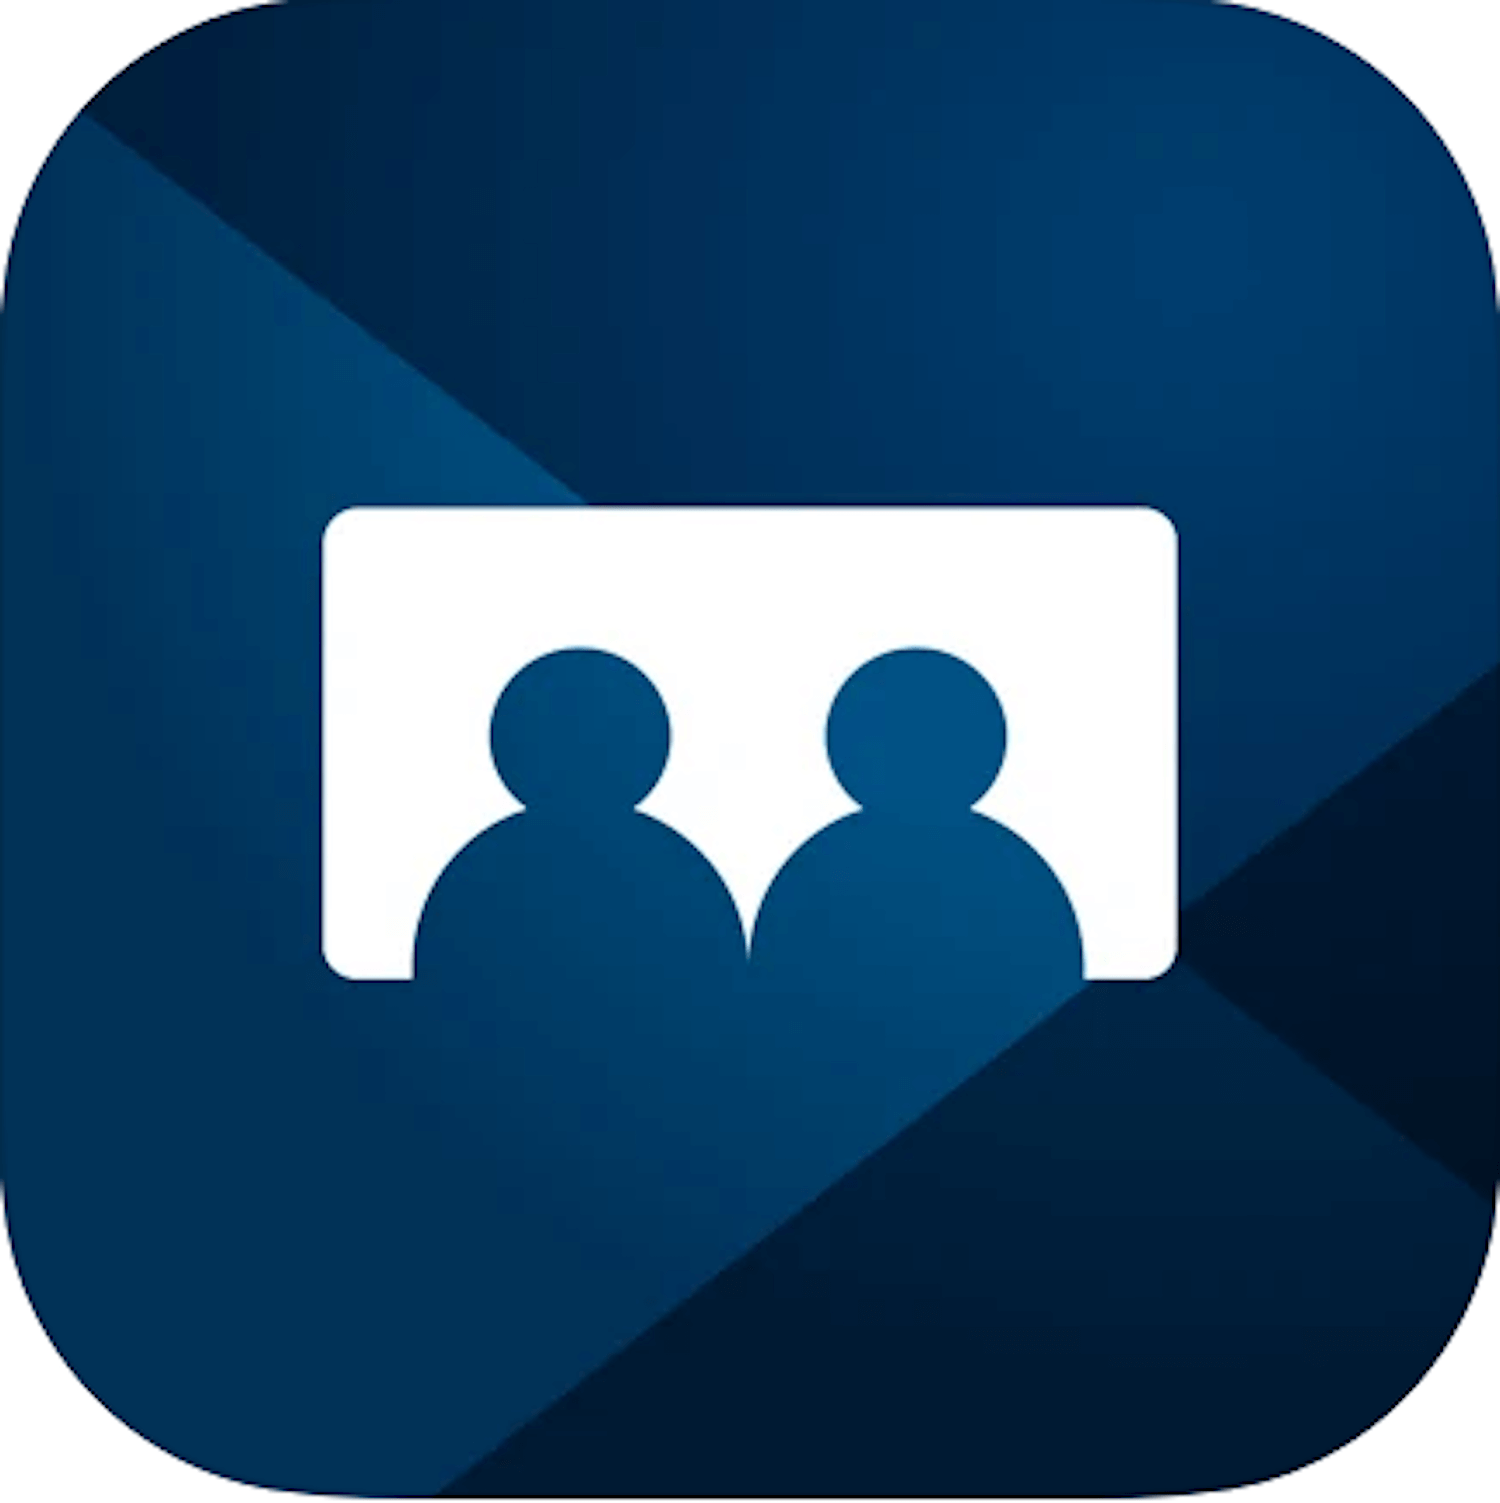 App icon for Spectrum Access Enabled Media app.